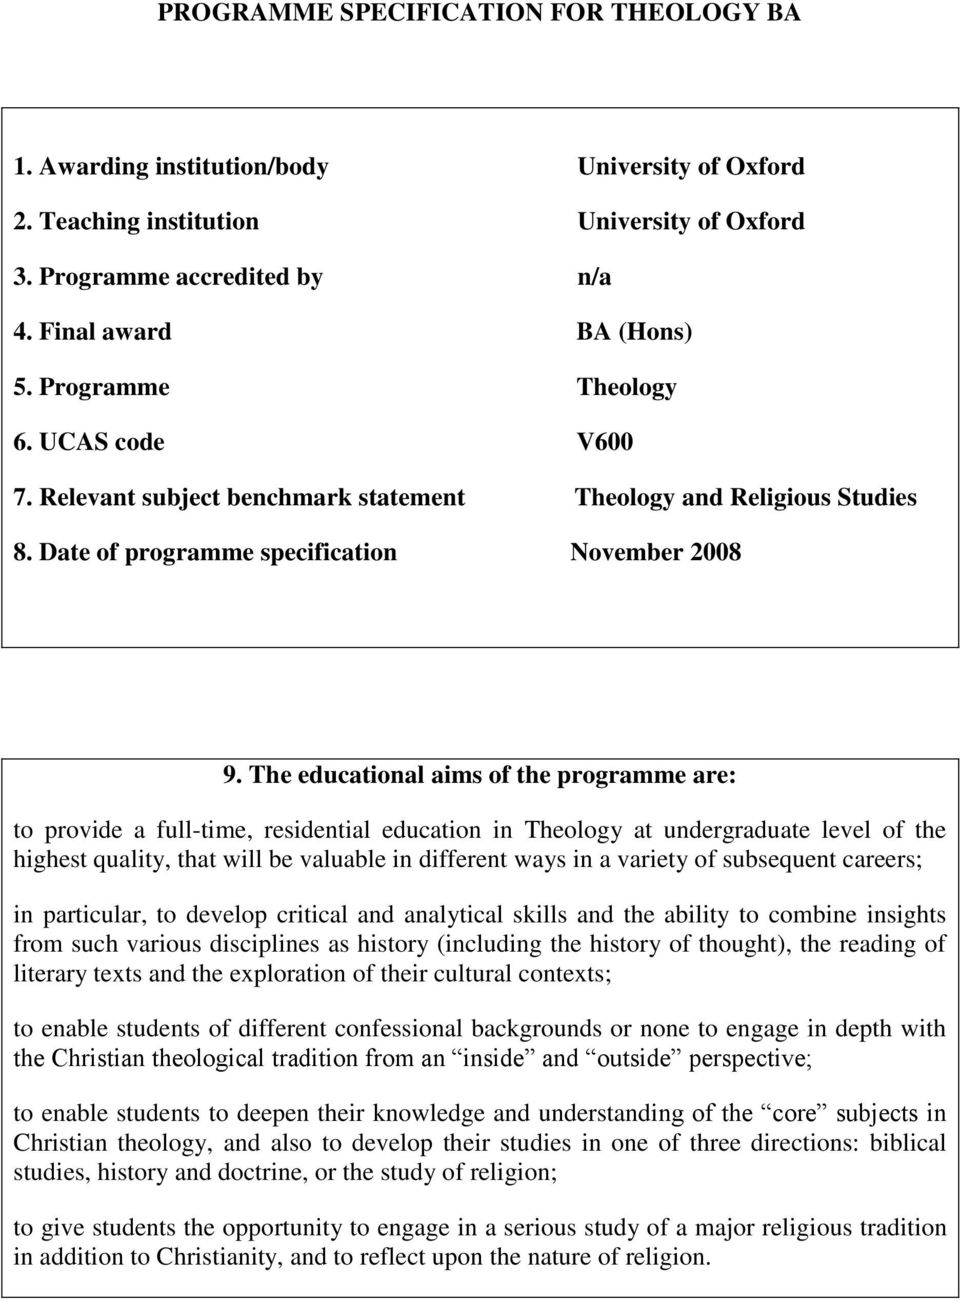 The educational aims of the programme are: to provide a full-time, residential education in Theology at undergraduate level of the highest quality, that will be valuable in different ways in a